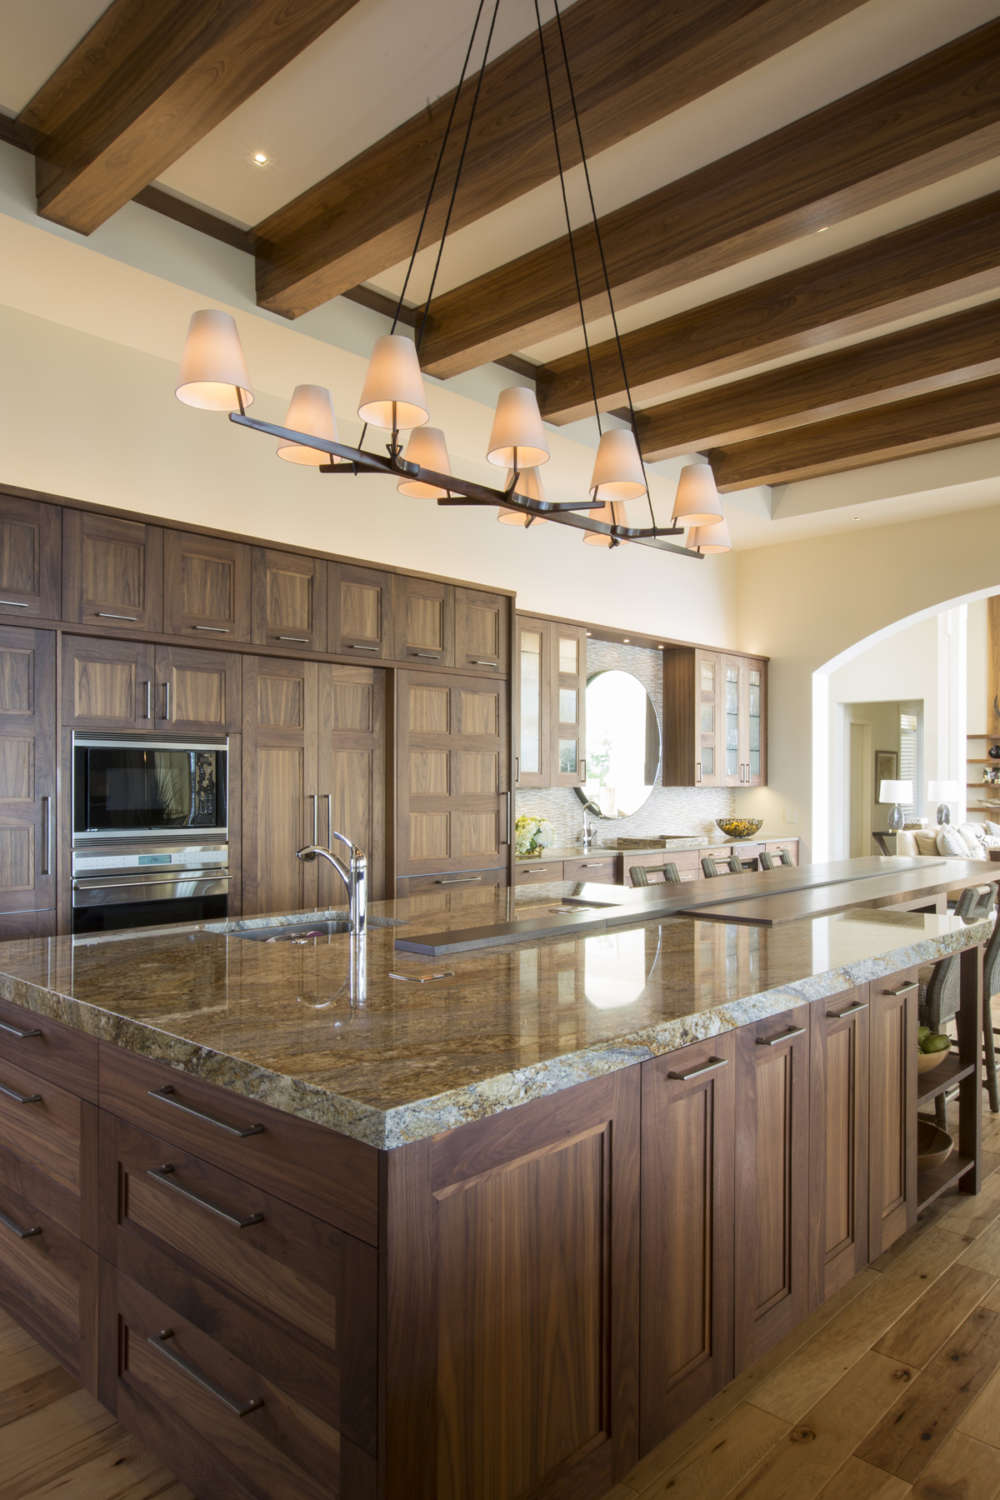 Transitional kitchen features high ceilings with exposed beams, fully custom natural walnut, frameless shaker style Rutt Regency Cabinetry, a large island with seating and warm-toned polished granite countertops. Design by RitaLuisa Garces of Bilotta Kitchens.